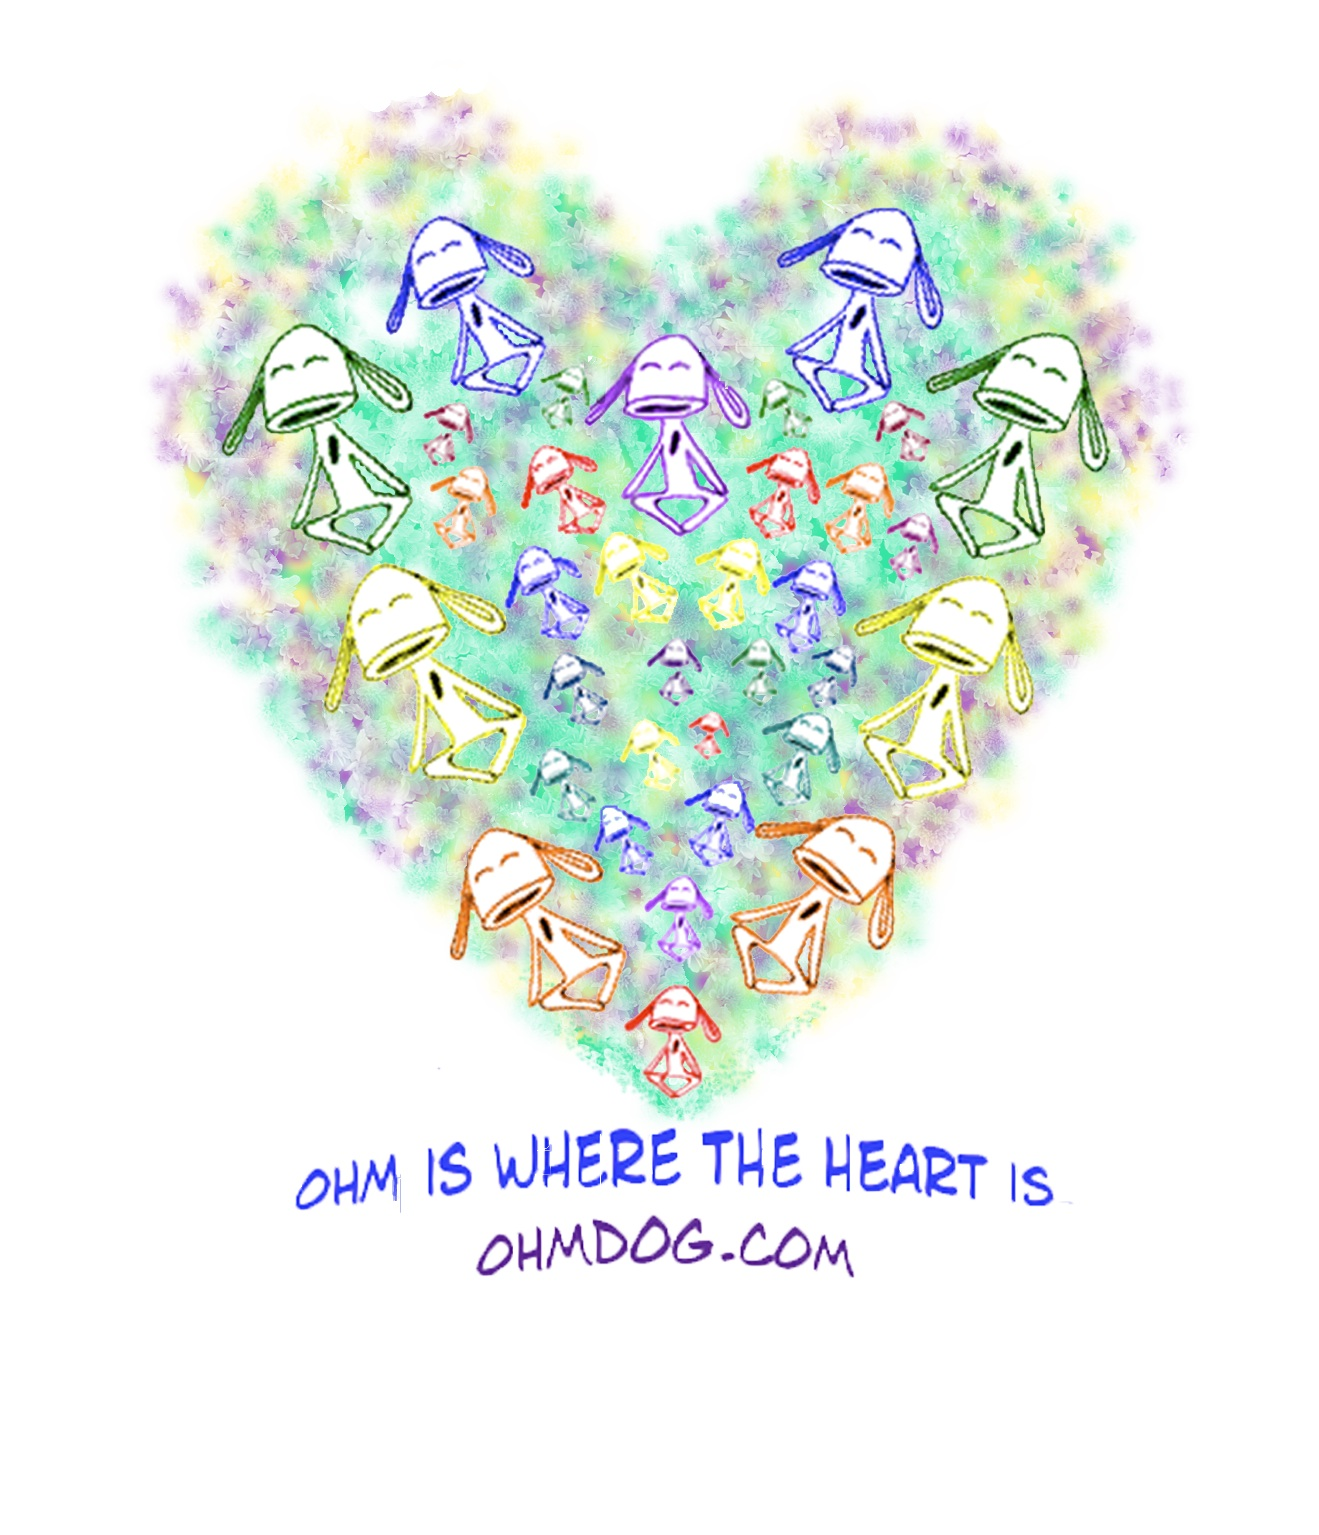 Ohm is where the heart is design